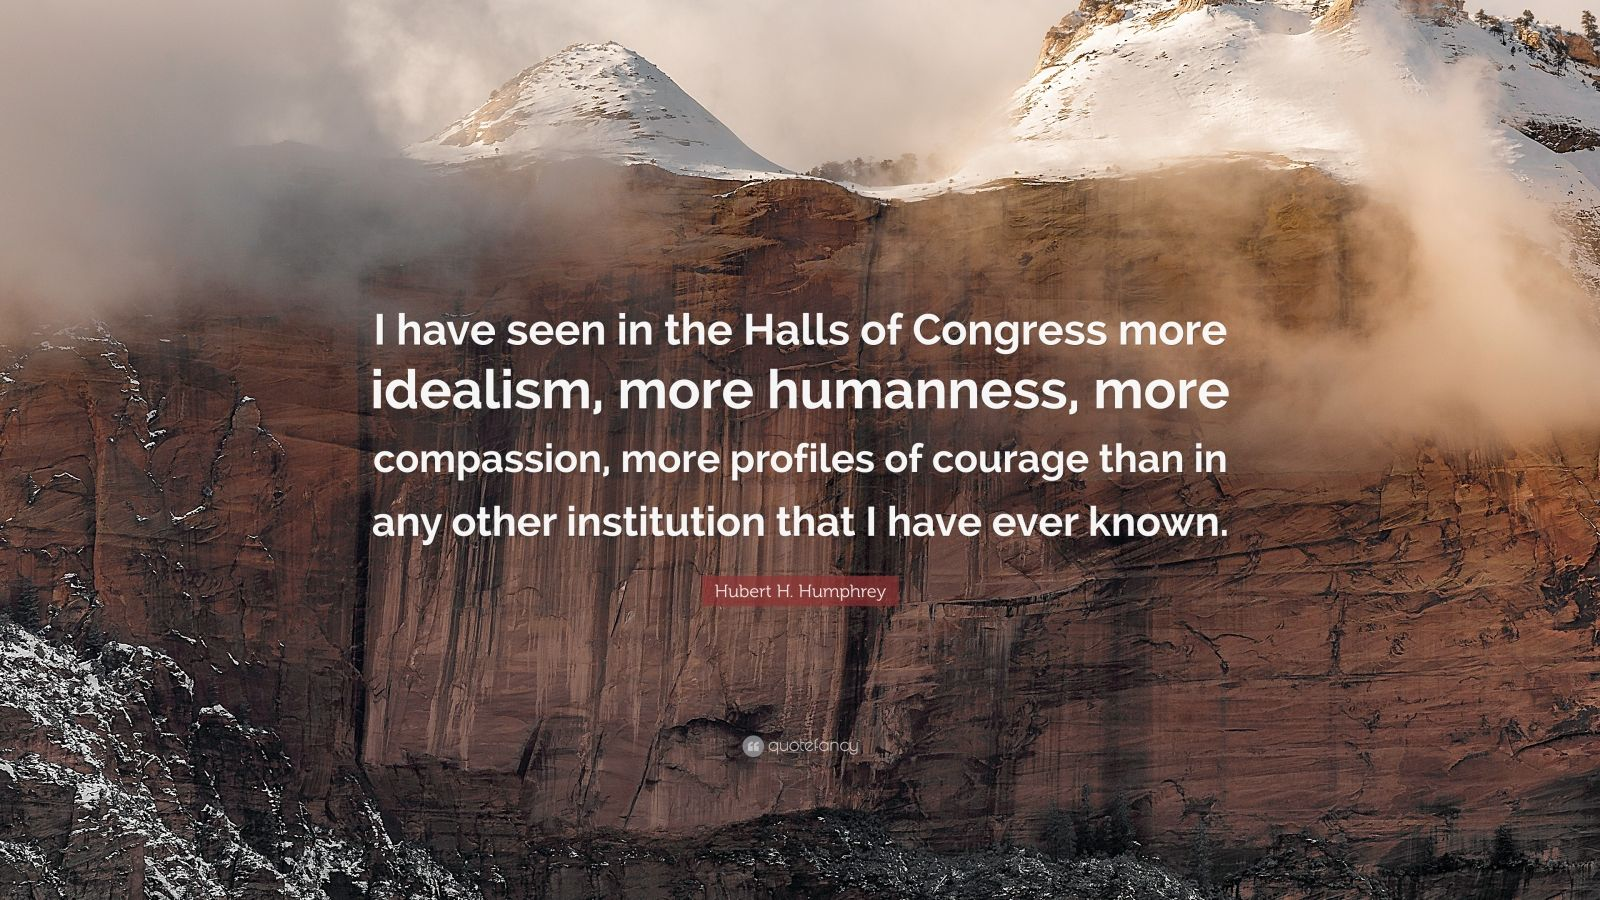 "Hubert H. Humphrey Quote: ""I have seen in the Halls of Congress more idealism, more humanness, more compassion, more profiles of courage than in any other institution that I have ever known."""